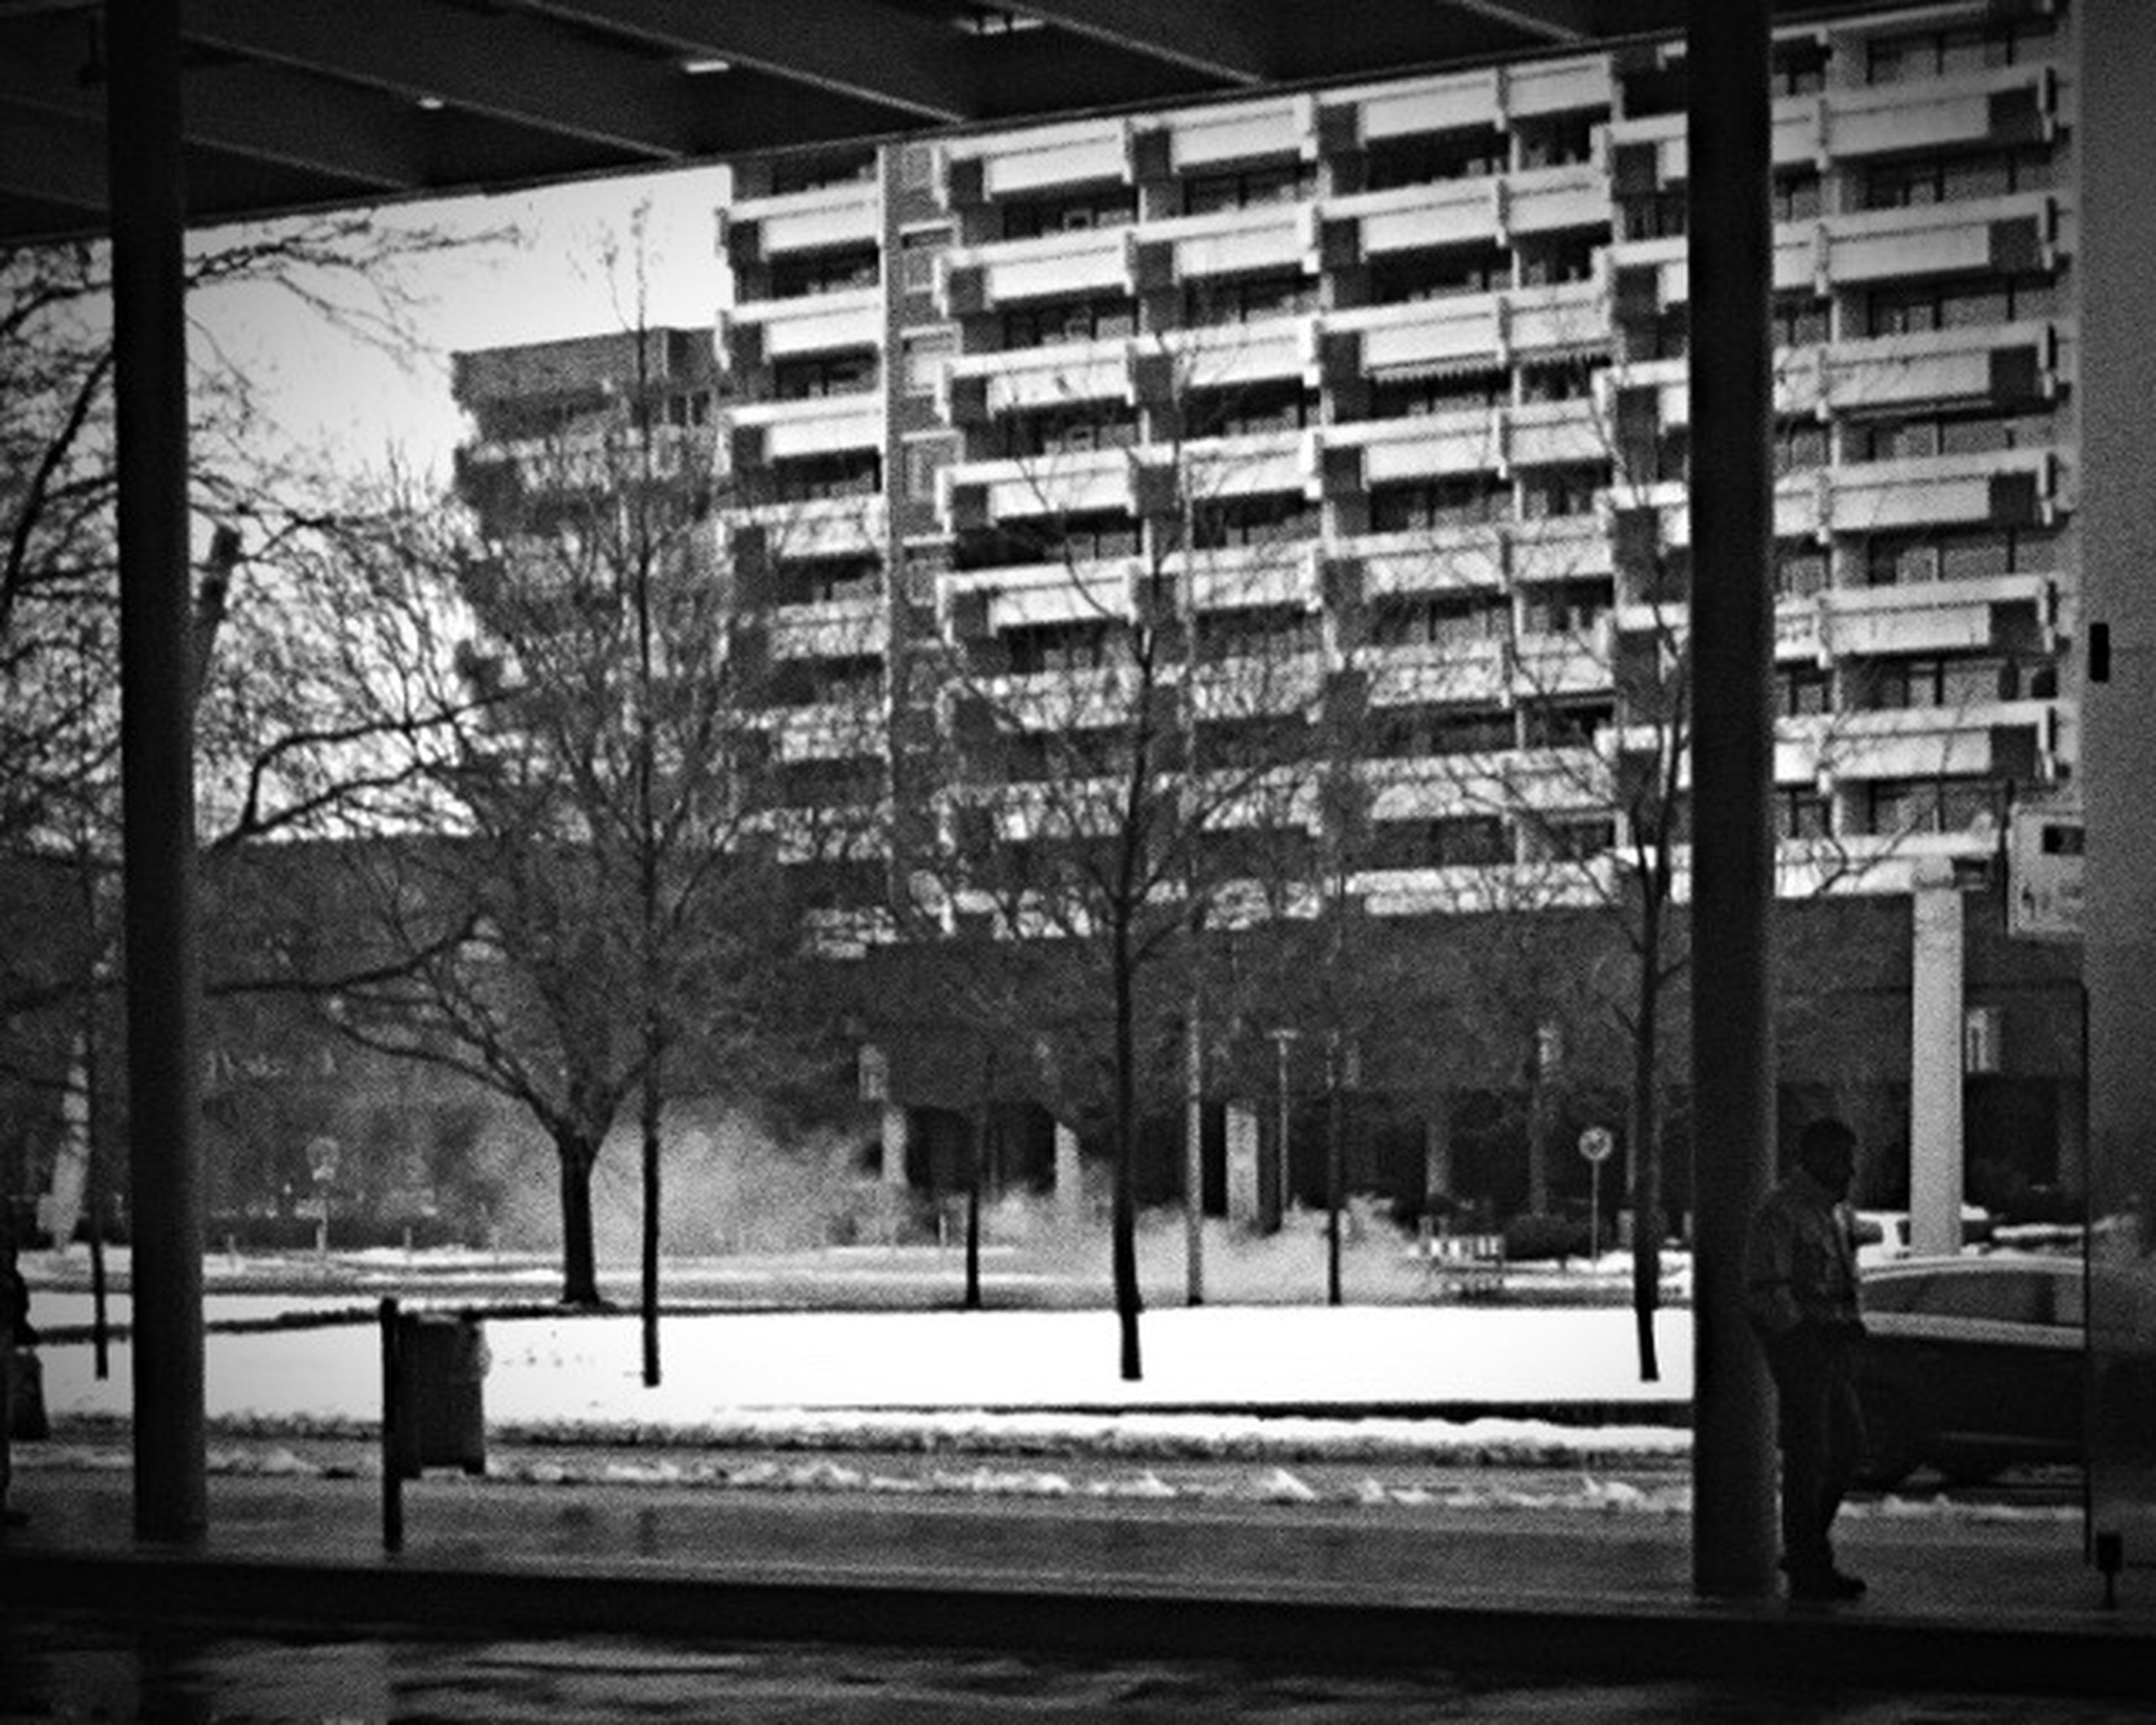 architecture, built structure, building exterior, city, building, street, tree, window, road, day, residential building, outdoors, residential structure, no people, street light, city life, empty, sunlight, incidental people, bare tree